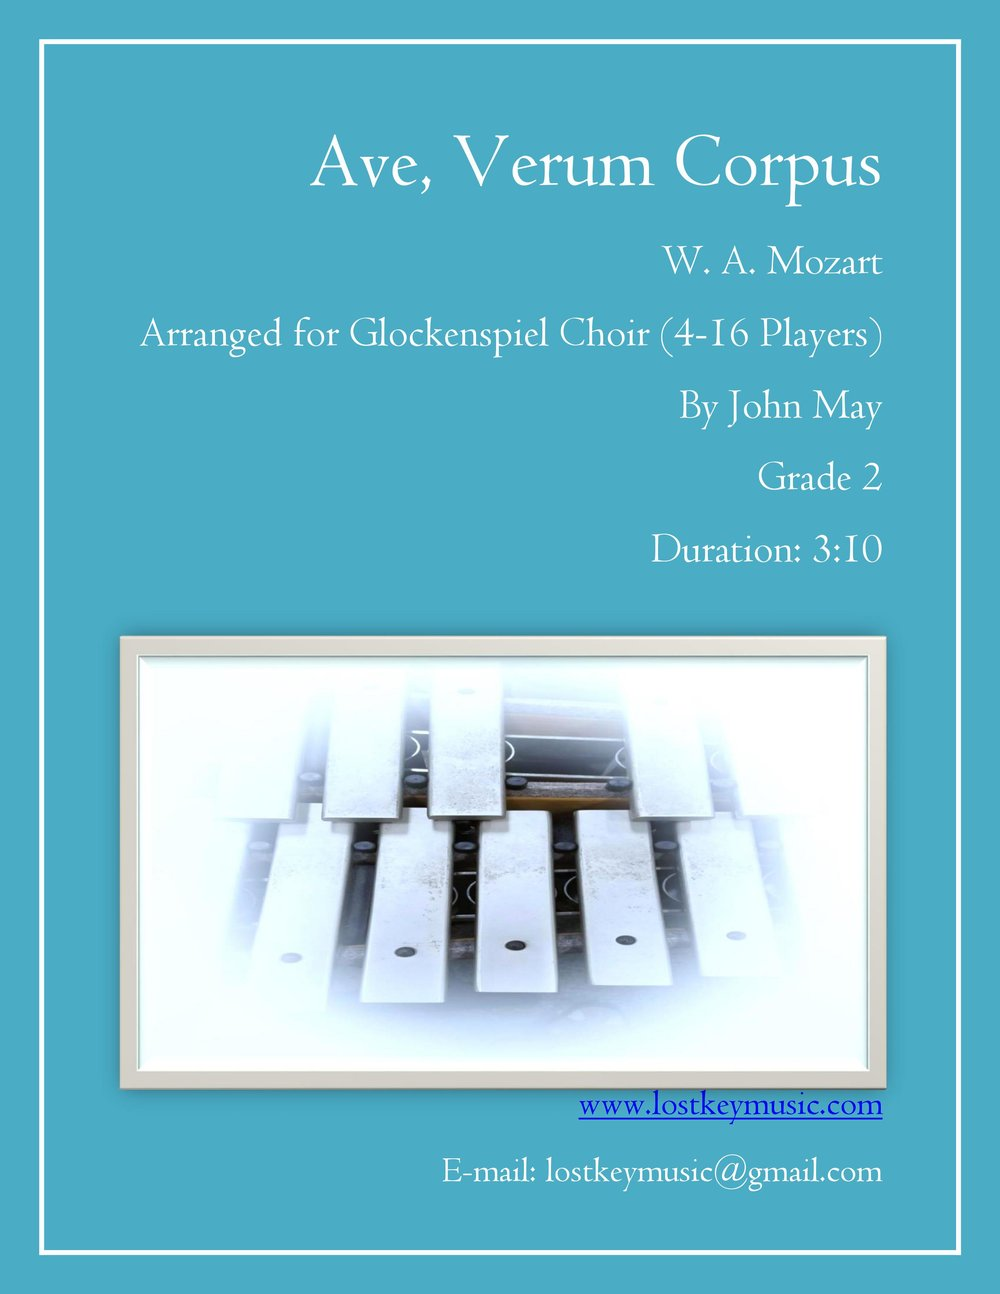 Ave, Verum Corpus Cover Photo.jpg